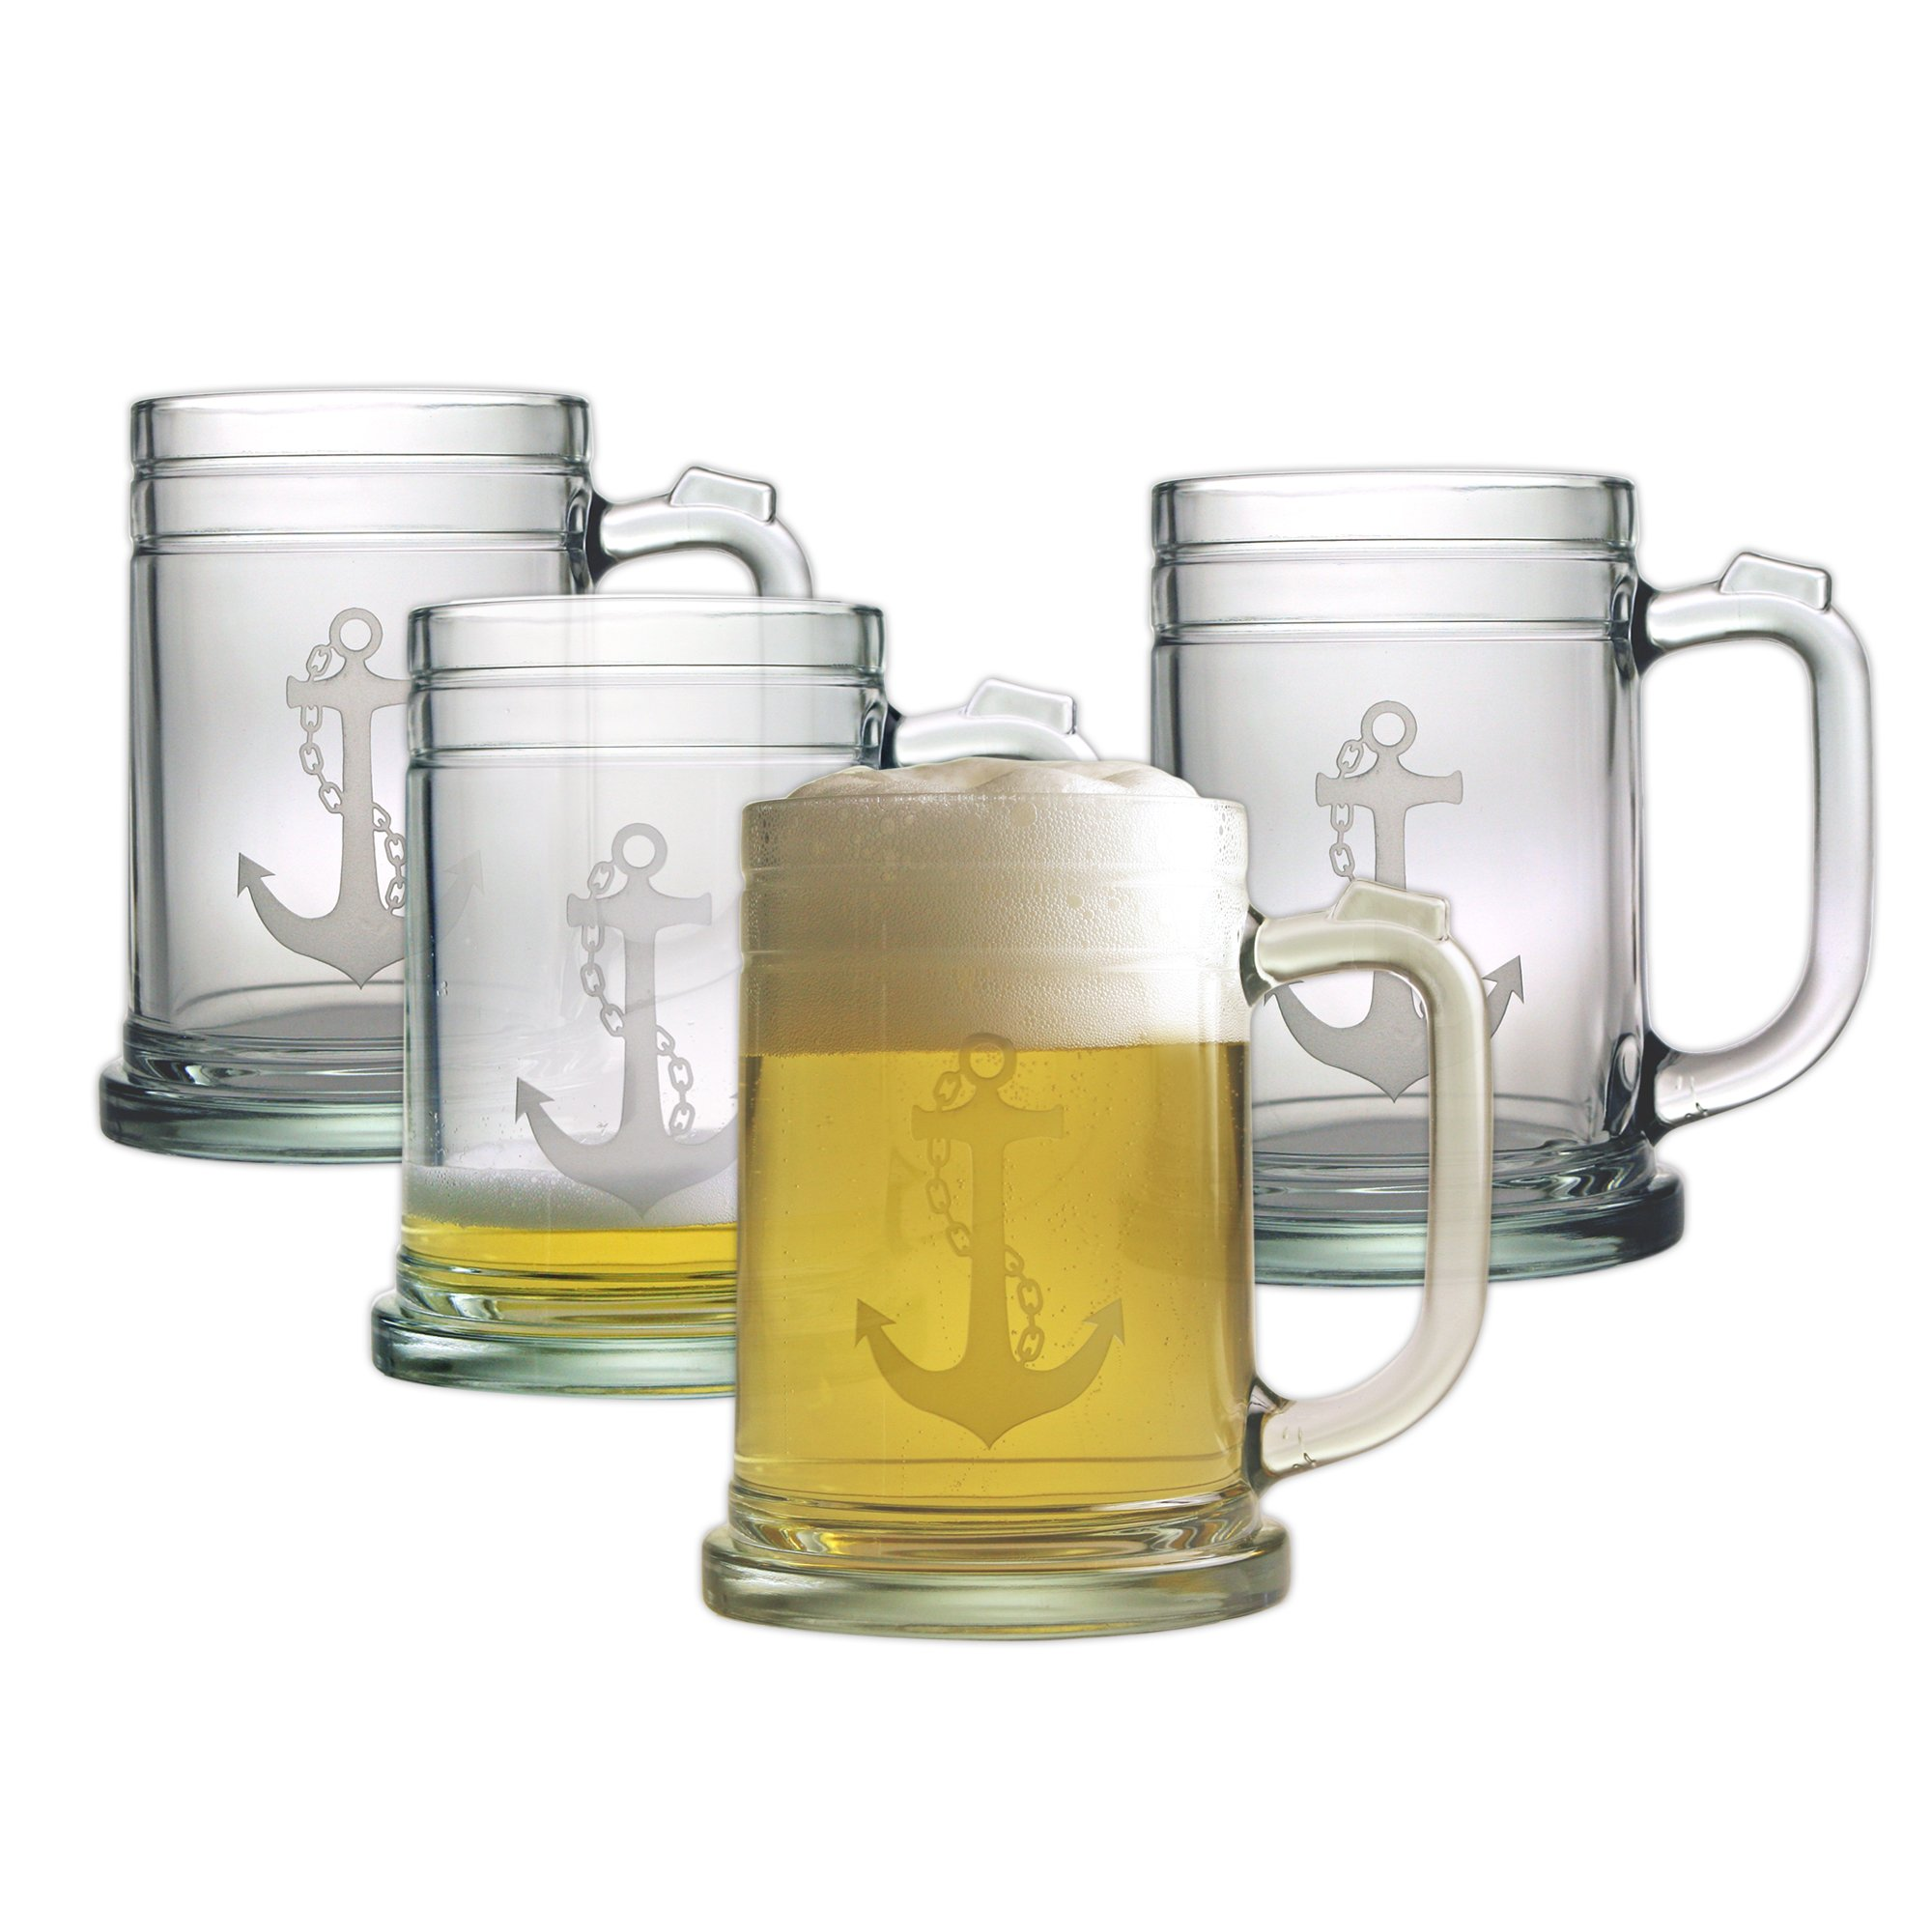 Susquehanna Glass Nautical Anchor Sand Etched Glass Tankard Mugs, Set of 4, 15 ounces by Susquehanna Glass (Image #1)